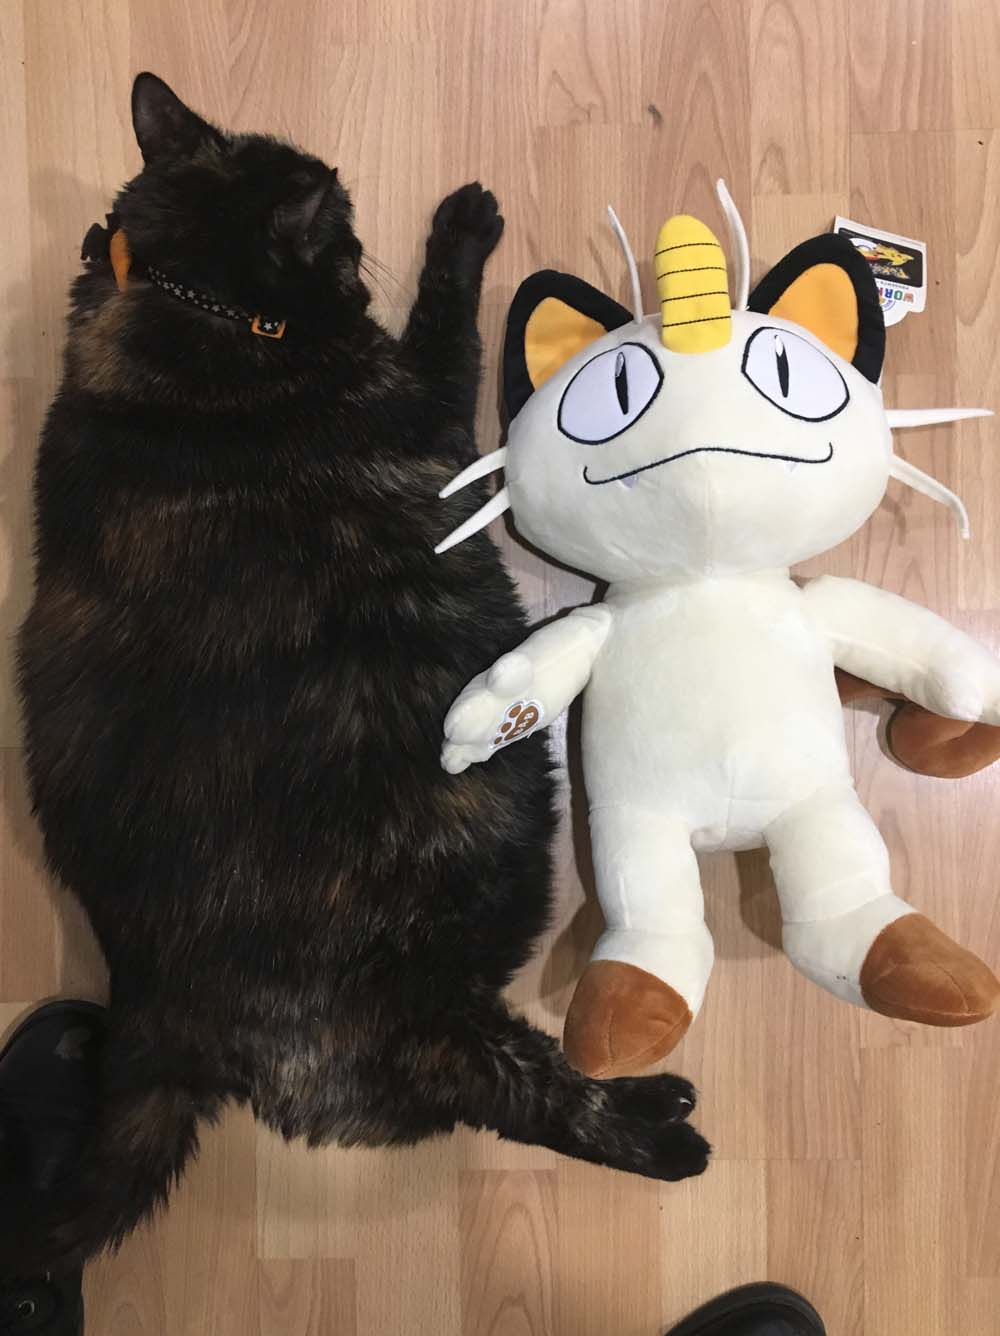 My IRL fat cat used for size reference